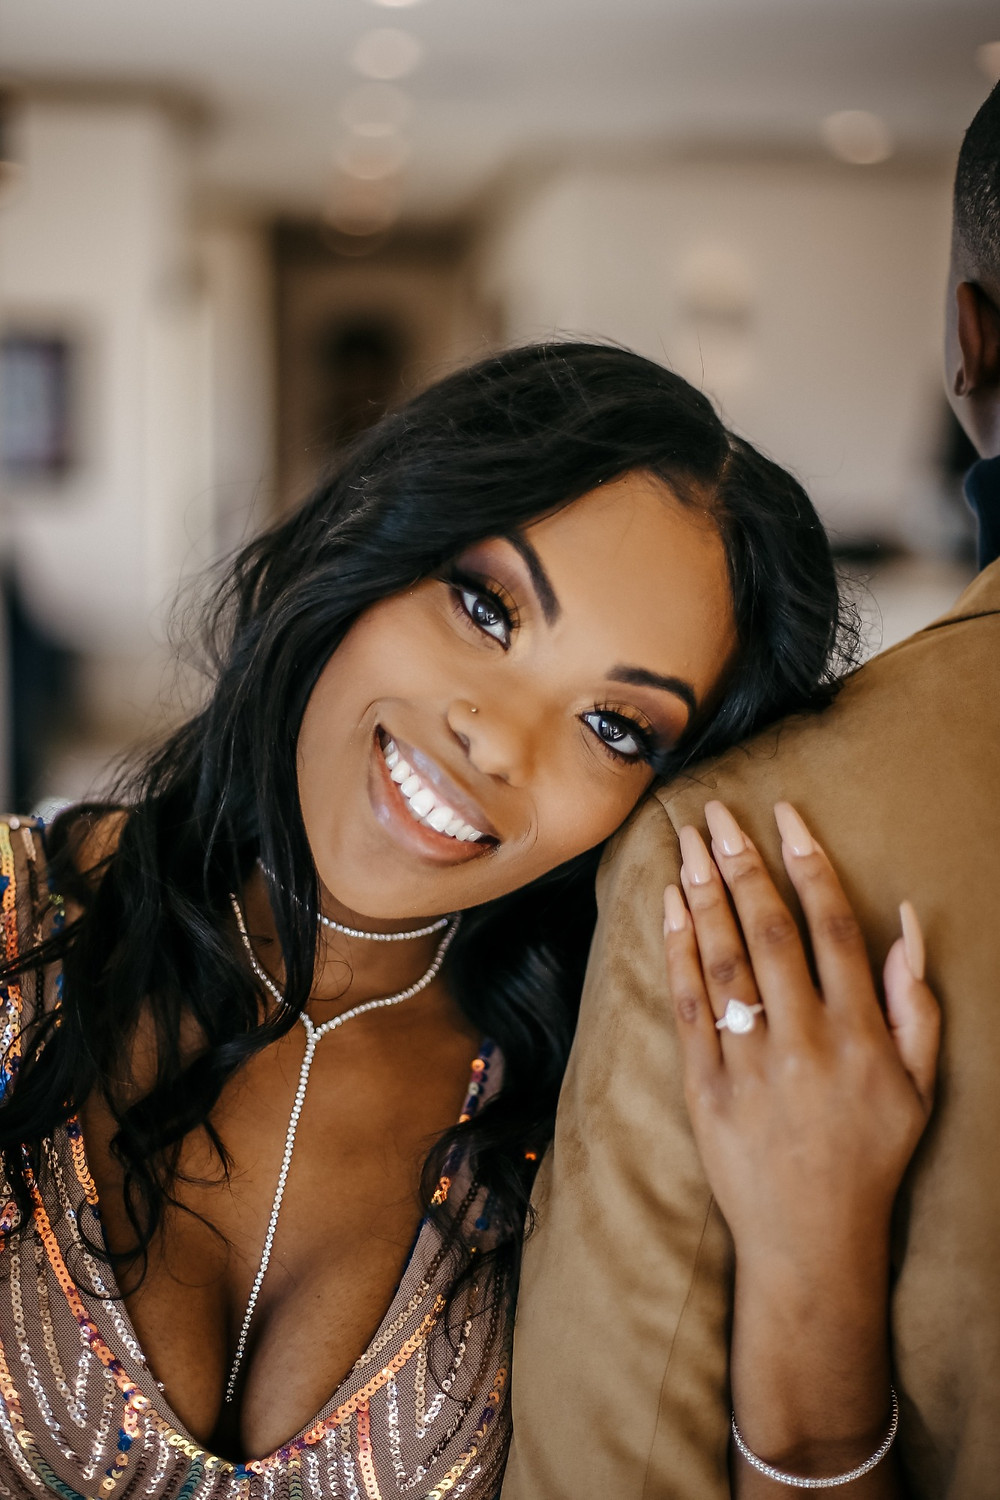 Engagement ring photo in Dallas, Texas by Joy Photo and Video.